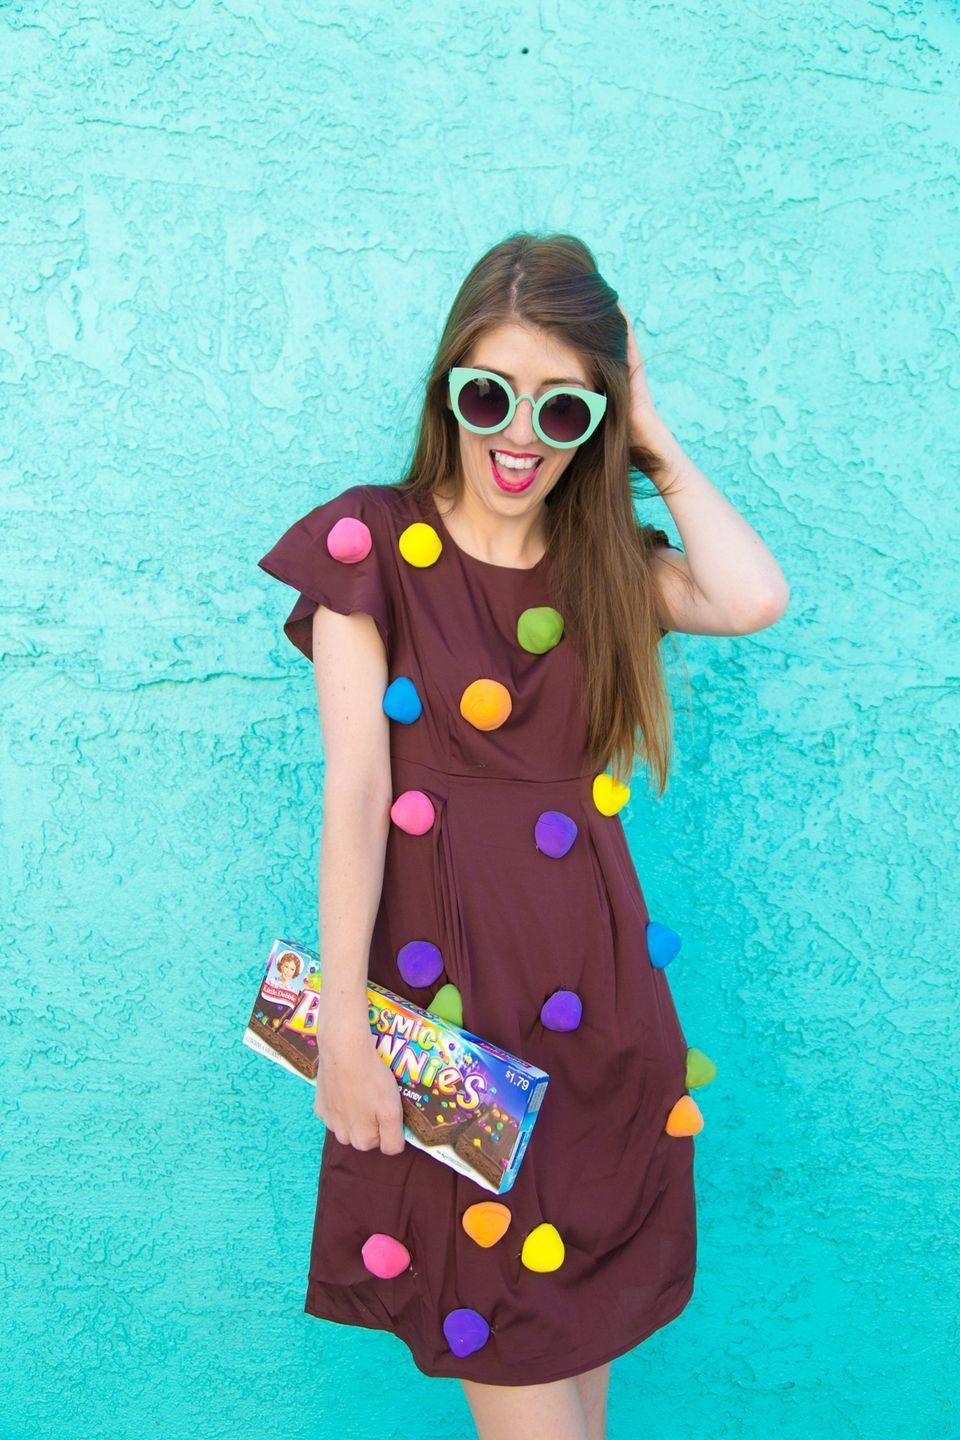 """<p>Here's a sweet idea: Dress as one of the most beloved sleepover treats of the 1990s. </p><p><em><a href=""""https://studiodiy.com/diy-cosmic-brownie-costume//"""" rel=""""nofollow noopener"""" target=""""_blank"""" data-ylk=""""slk:Get the tutorial."""" class=""""link rapid-noclick-resp"""">Get the tutorial.</a></em></p><p><a class=""""link rapid-noclick-resp"""" href=""""https://www.amazon.com/Wenrine-Womens-Sleeveless-Bodycon-Stretchy/dp/B08M5ZF85H/?tag=syn-yahoo-20&ascsubtag=%5Bartid%7C10072.g.37059504%5Bsrc%7Cyahoo-us"""" rel=""""nofollow noopener"""" target=""""_blank"""" data-ylk=""""slk:SHOP DRESS"""">SHOP DRESS</a></p>"""